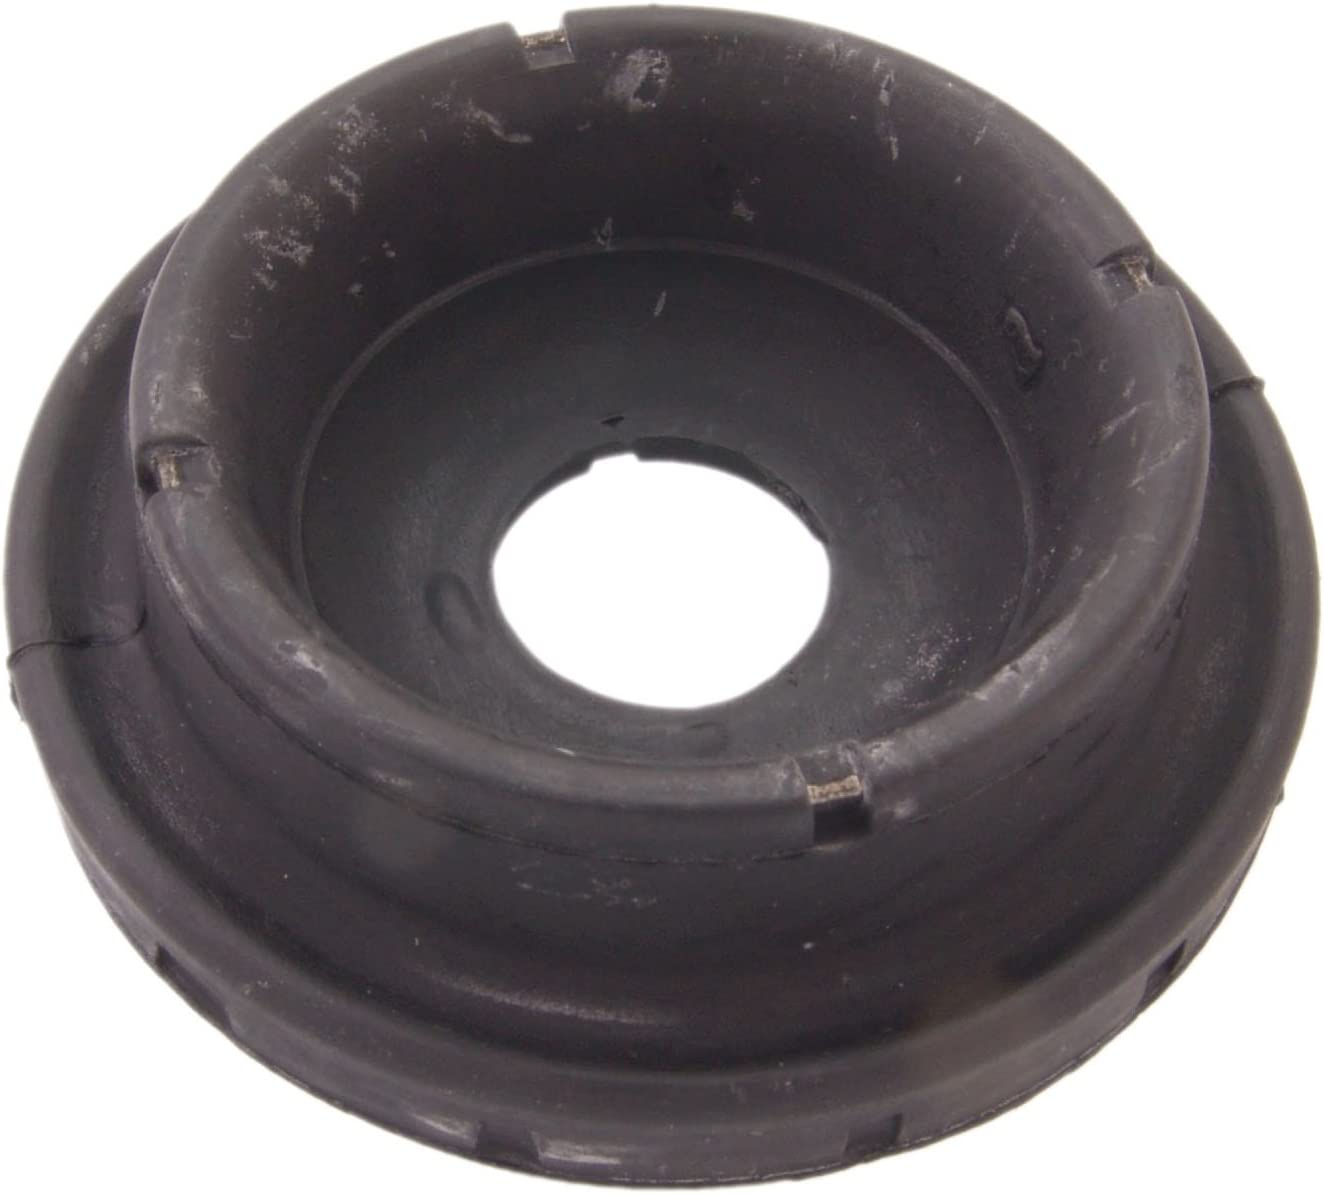 96535011 - Front Houston Mall Over item handling Shock Absorber Febest For Support GM Vehicles